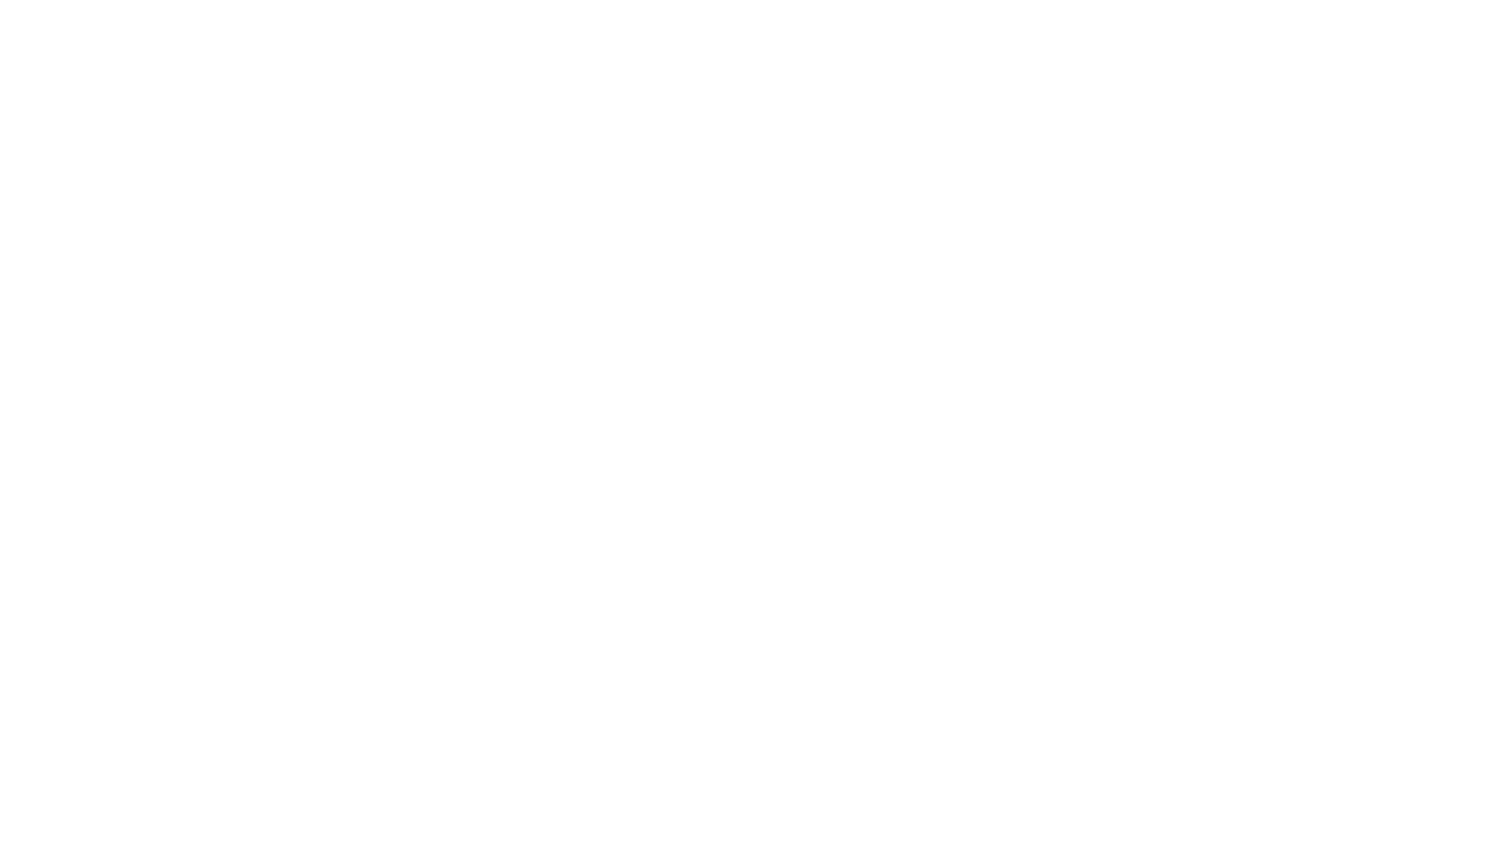 Worship Support Network